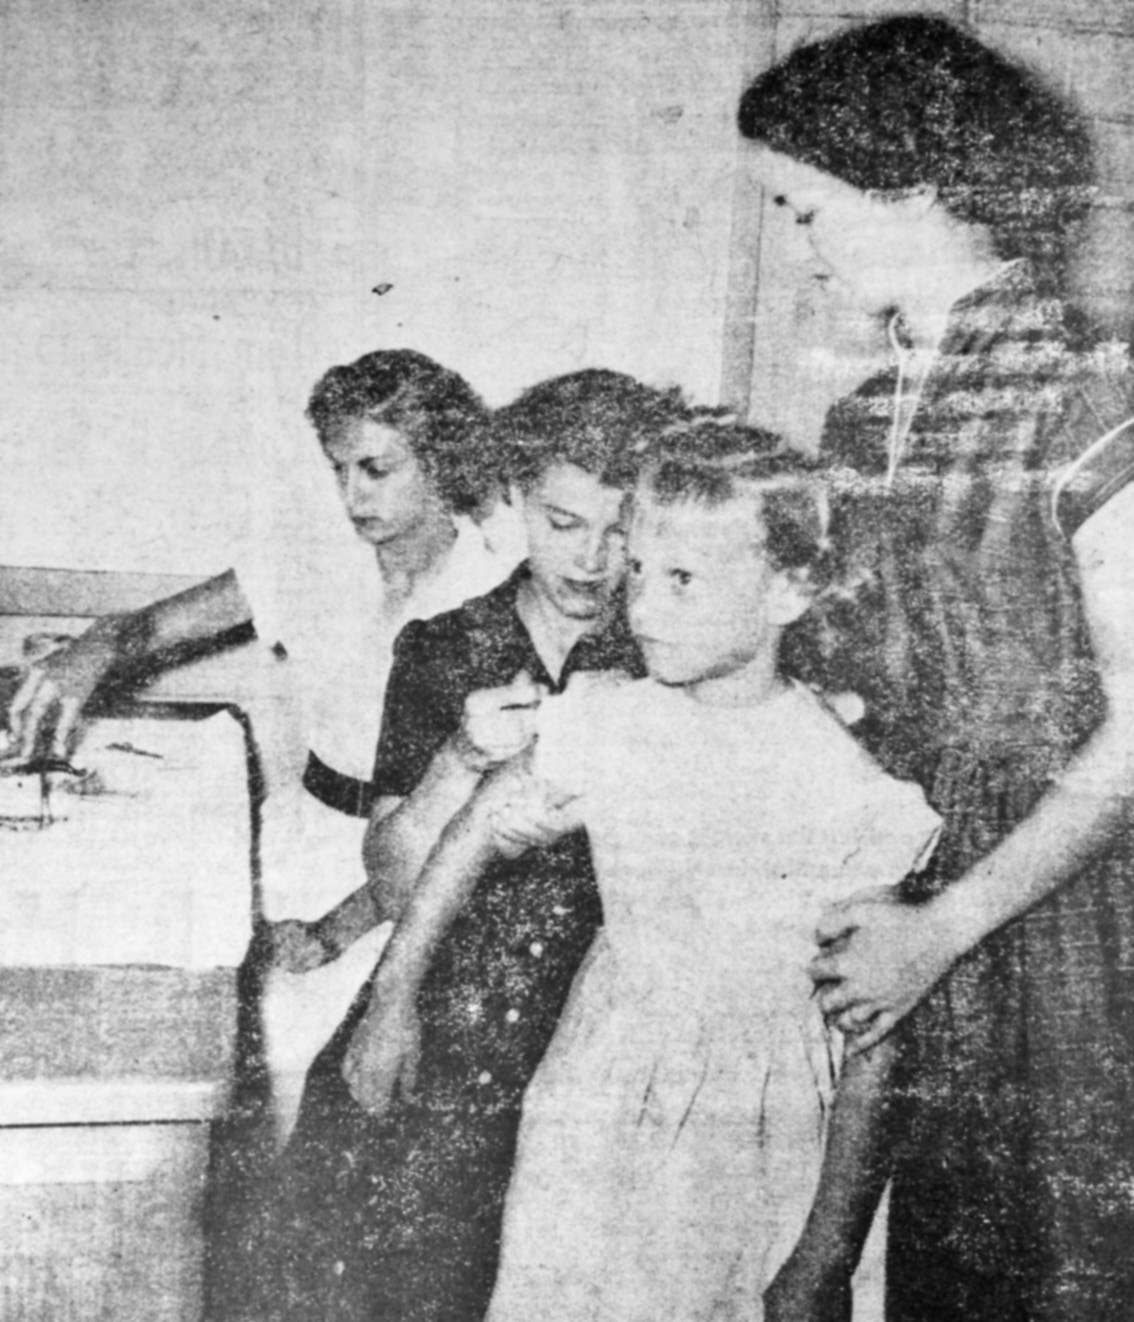 First polio shot-First youngster to get a polio shot at Poteet was Kathy Hayes, second grader. A brave little girl, Kathy looks a little dubious about the whole thing but she didn't complain. It was suspected that besides getting a polio shot, Kathy might also be getting the measles. She was the first in line because she wasn't feeling too well. Giving the shot is Mrs. Harriet Fischer, school nurse. Standing next to Kathy is Evon Harrison and Marie Dauwe is at the far left. Photo originally ran in the April 28, 1955 edition of the Pleasanton Express.